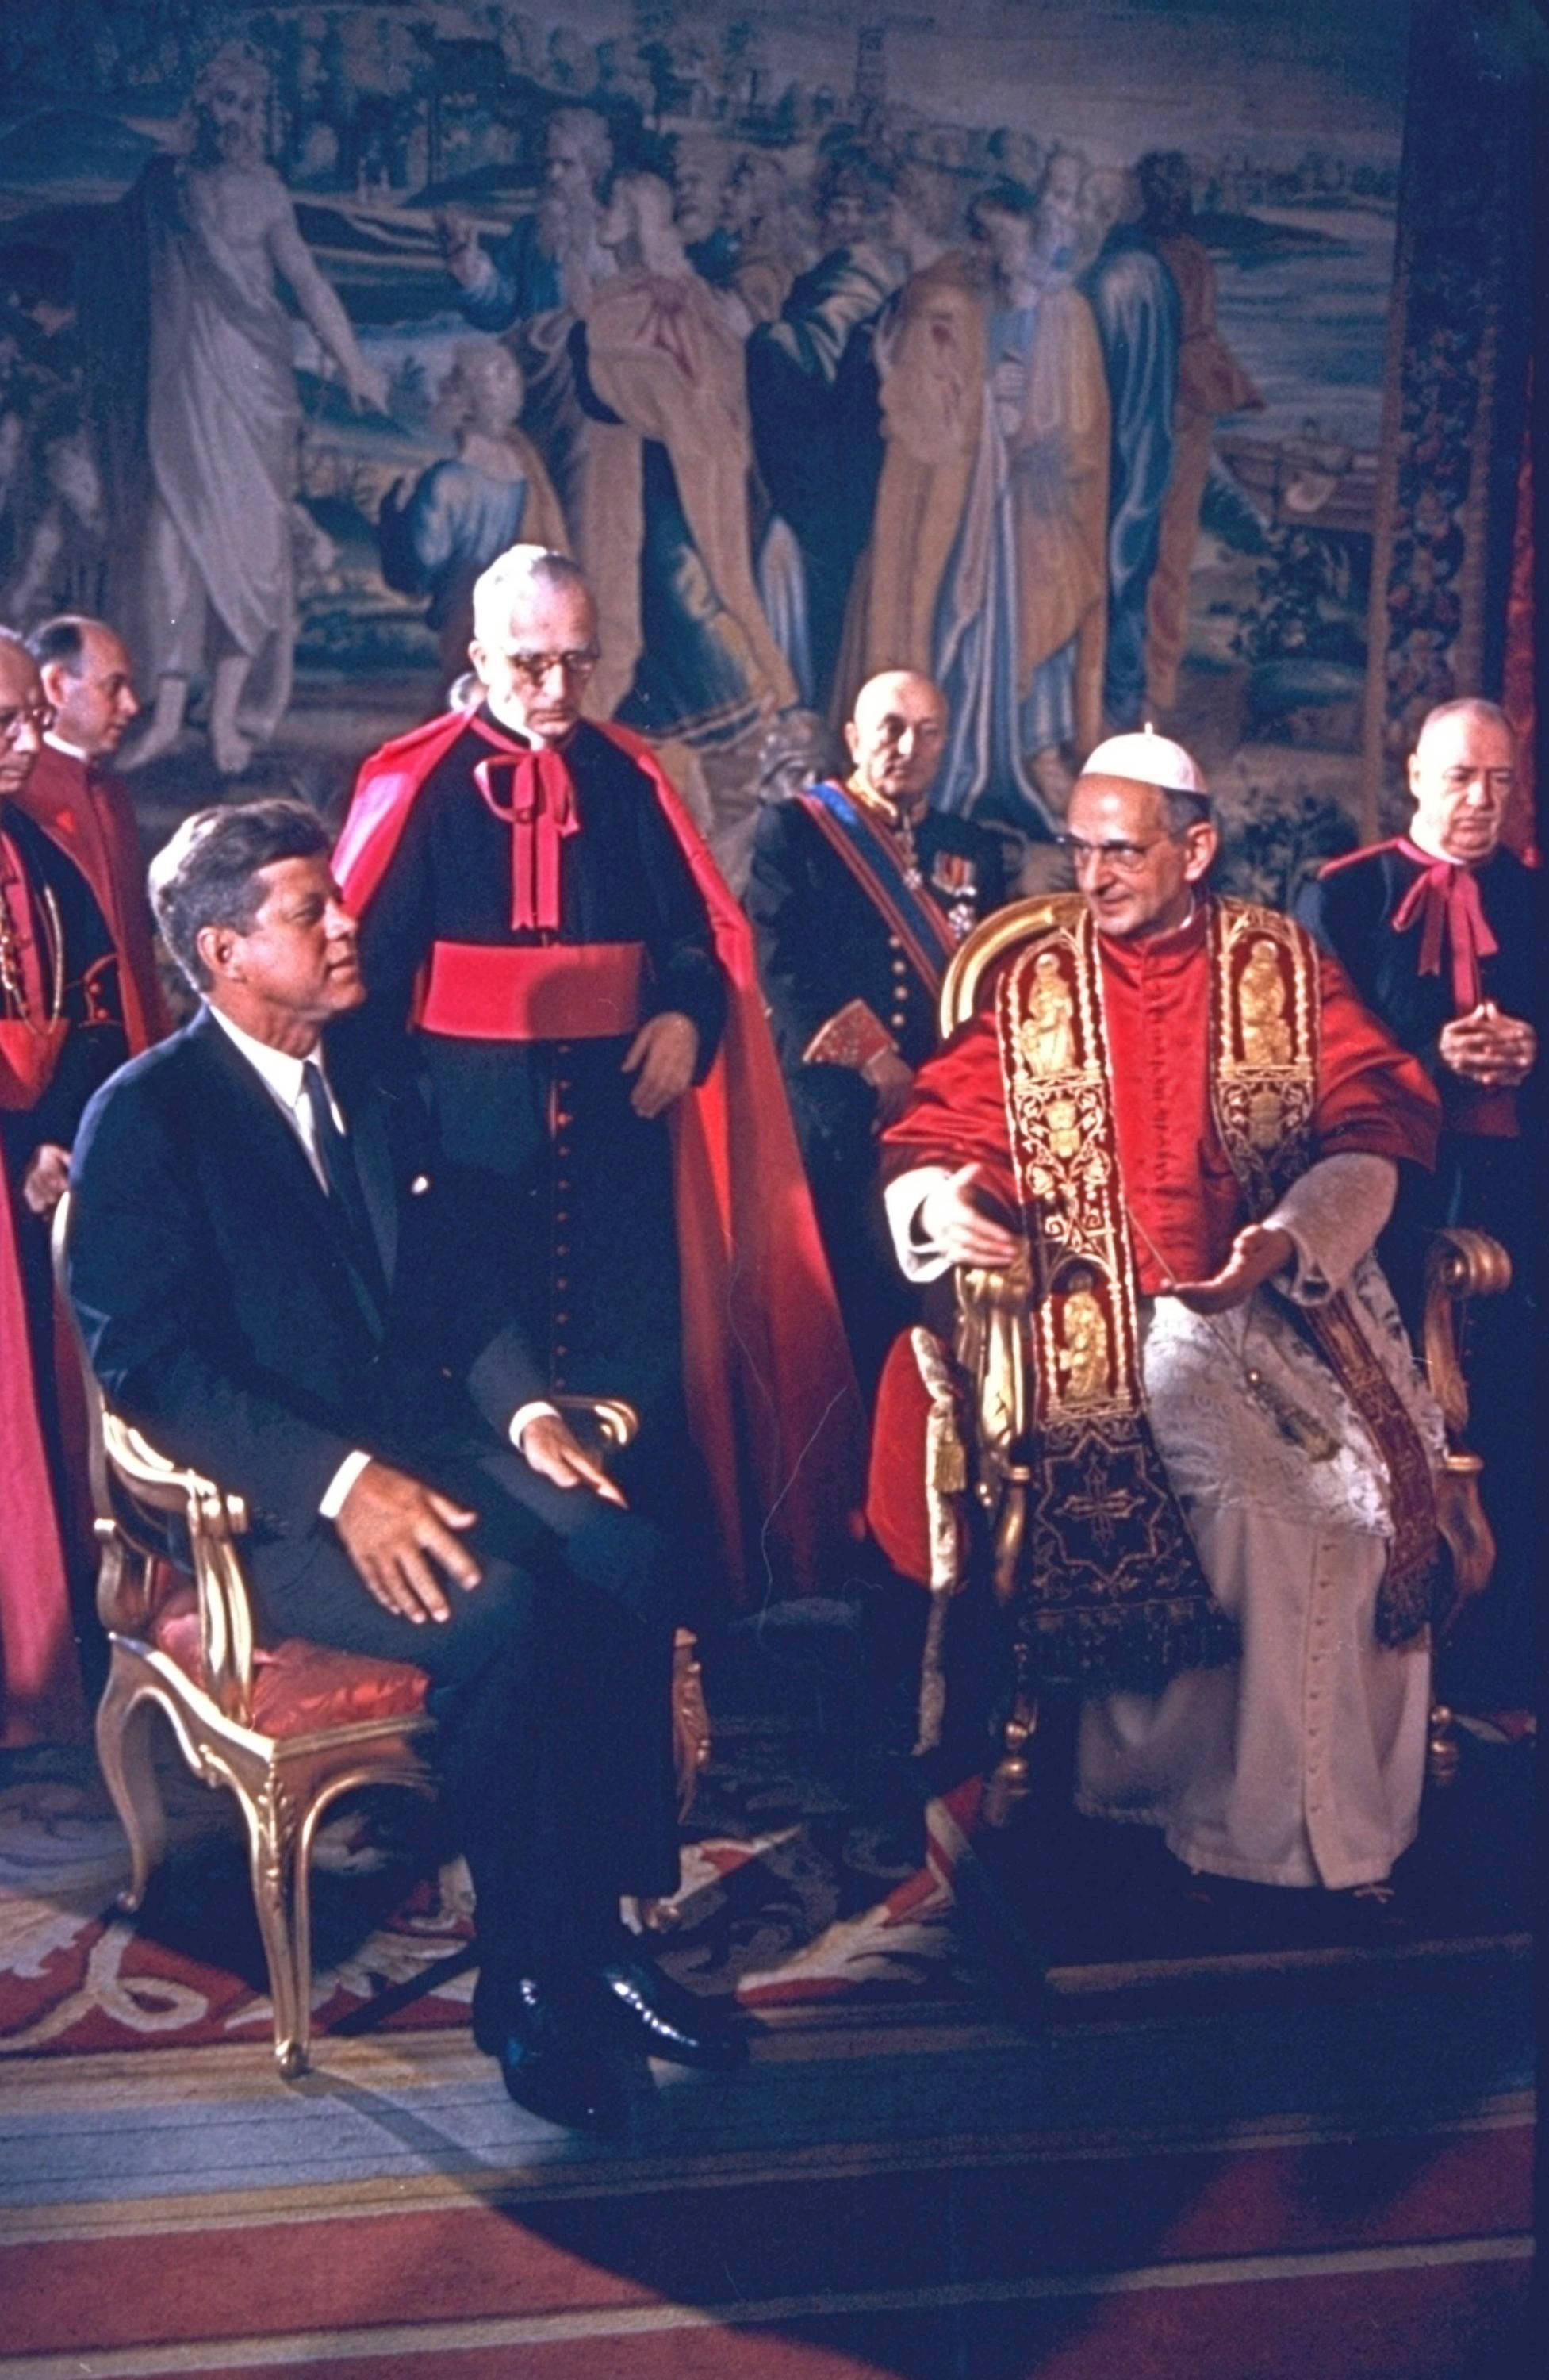 "In this file photo, taken on July 3, 1963, President Kennedy is shown at the Vatican in an audience with Pope Paul VI. Pope Francis has approved a miracle credited to the intercession of Paul VI and set the date for the late pontiff's beatification for Oct. 19, the Vatican said Saturday. Francis had authorized the beatification, the last formal step before possible sainthood, a day earlier, the Vatican said. Paul VI, who reigned as pontiff from 1963-1978, made landmark progress in improving Catholics' relationship with other Christians. His papacy is also remembered by his decision, after years of study, to ban contraception for Catholics, in a 1968 encyclical, ""Humanae Vitae"" (""of human life"")."